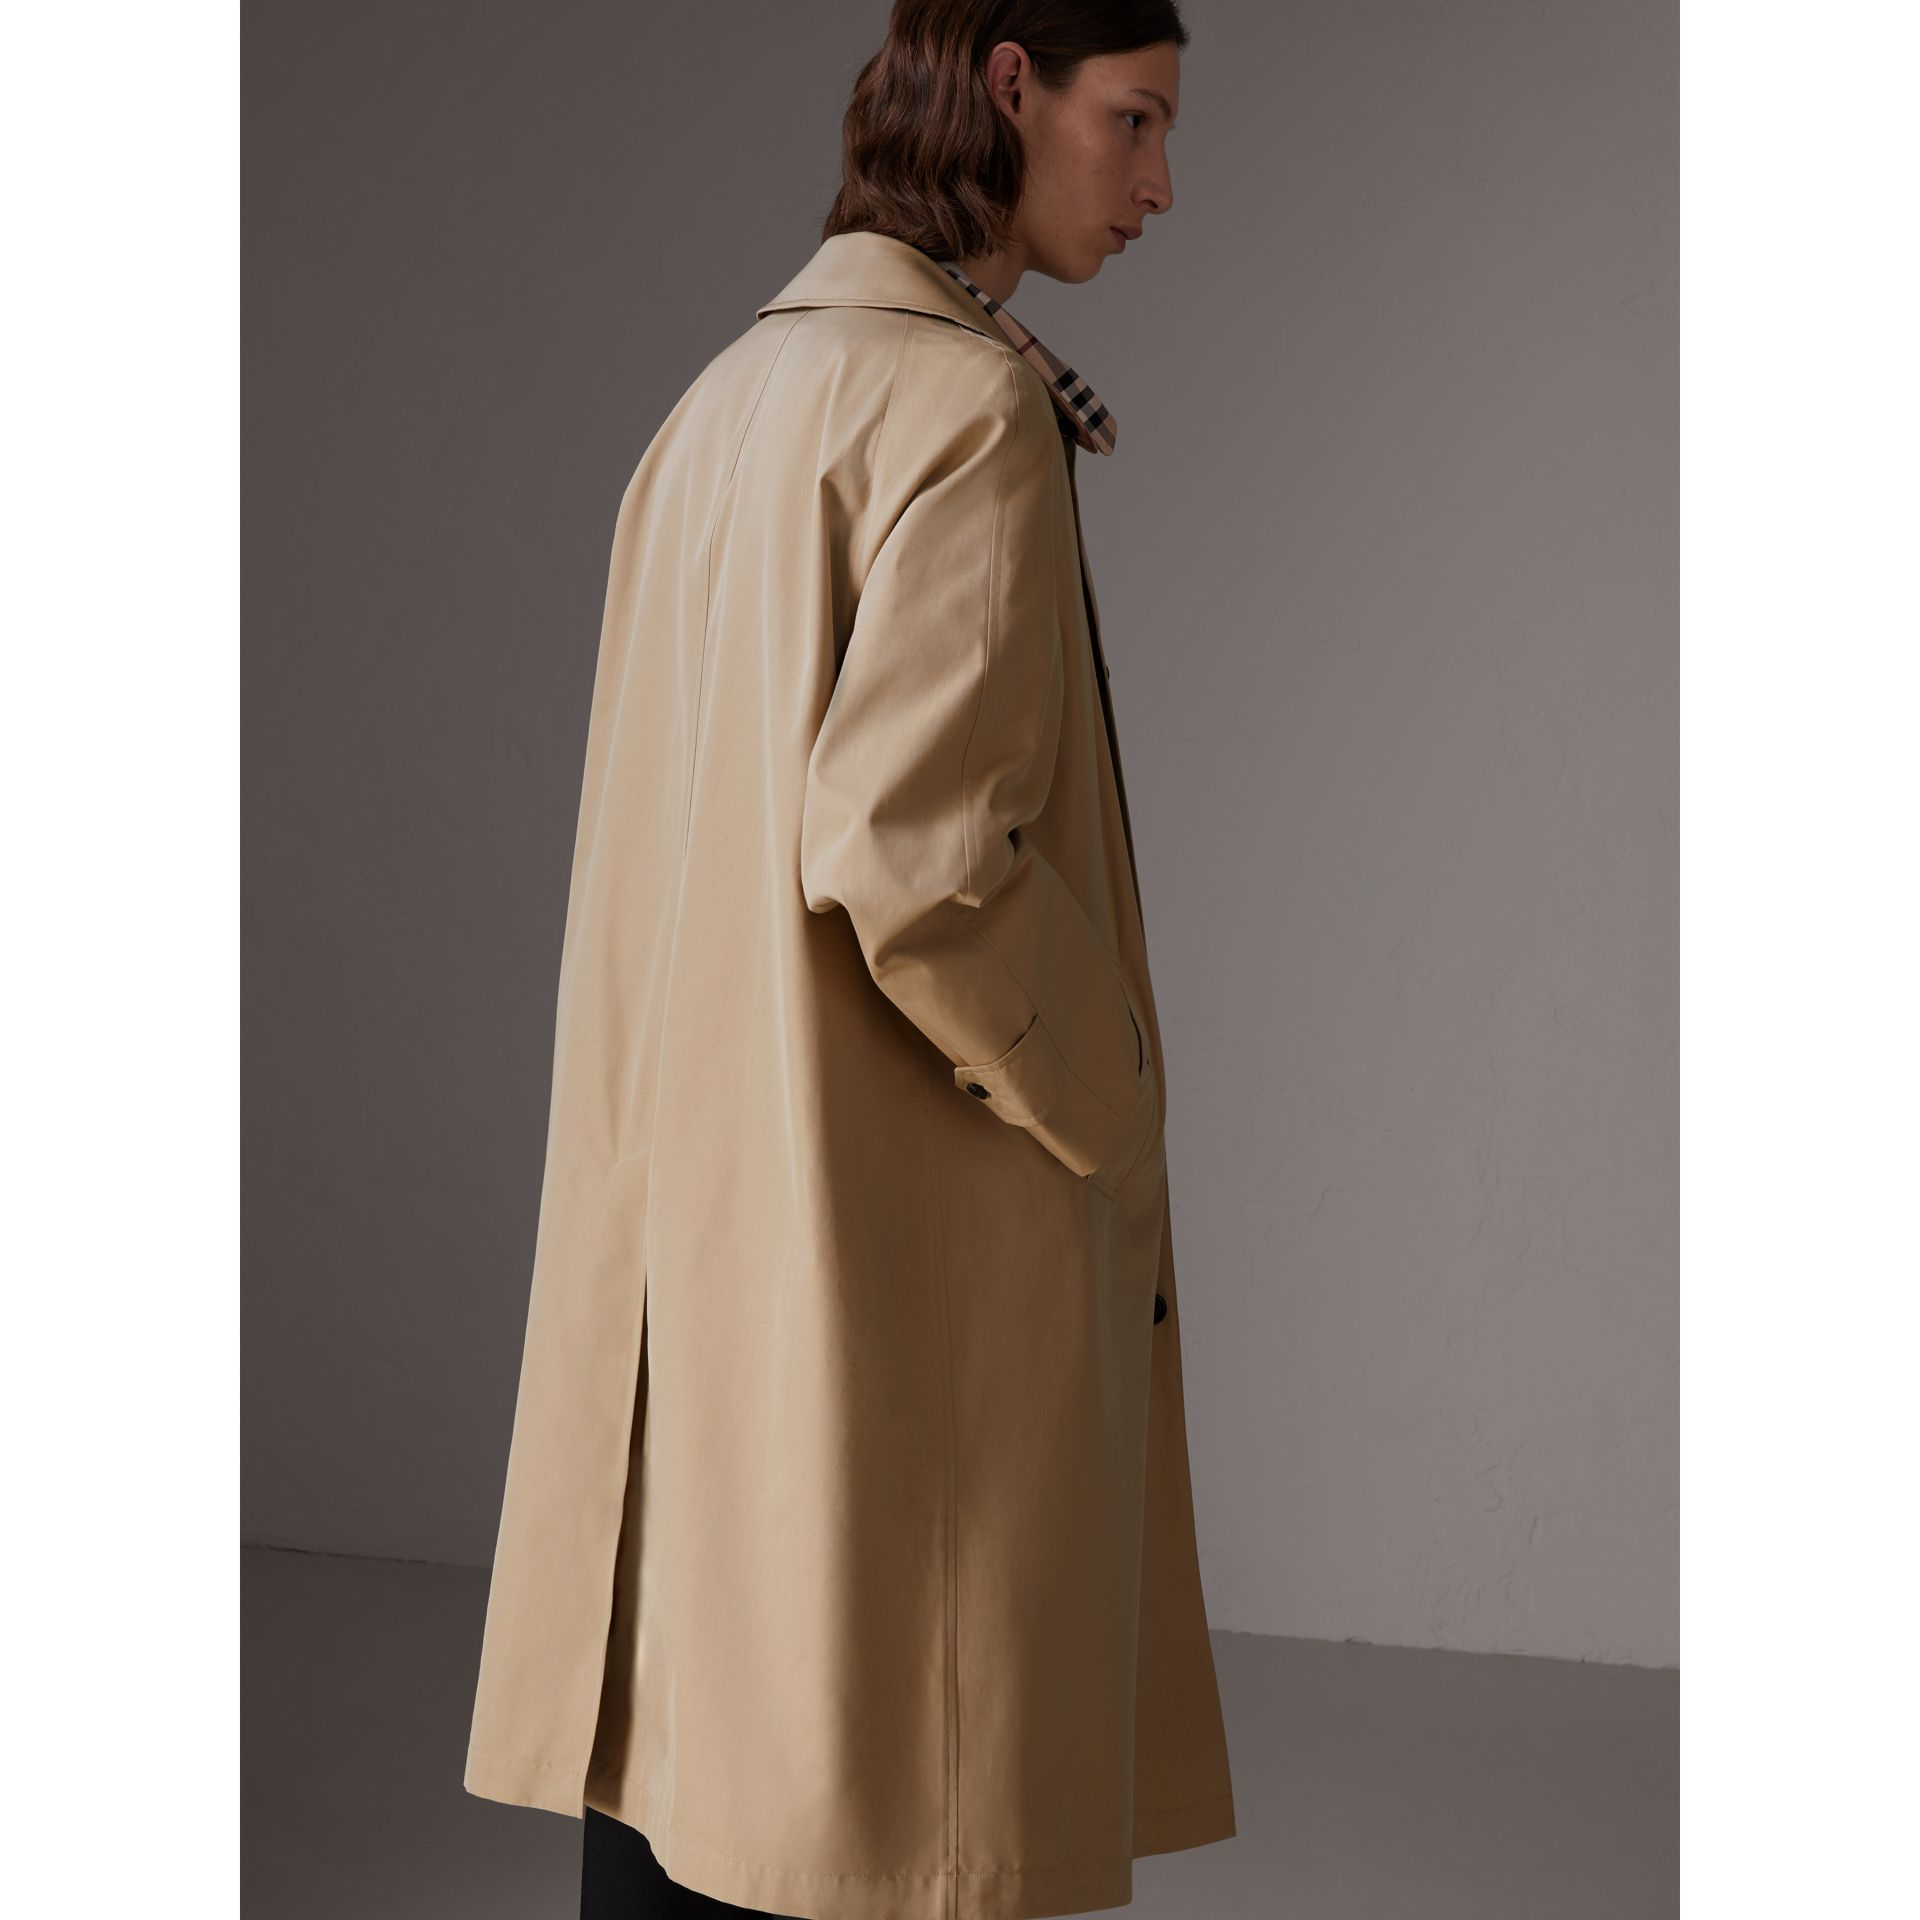 Gosha x Burberry Reconstructed Car Coat in Honey | Burberry United Kingdom - gallery image 7